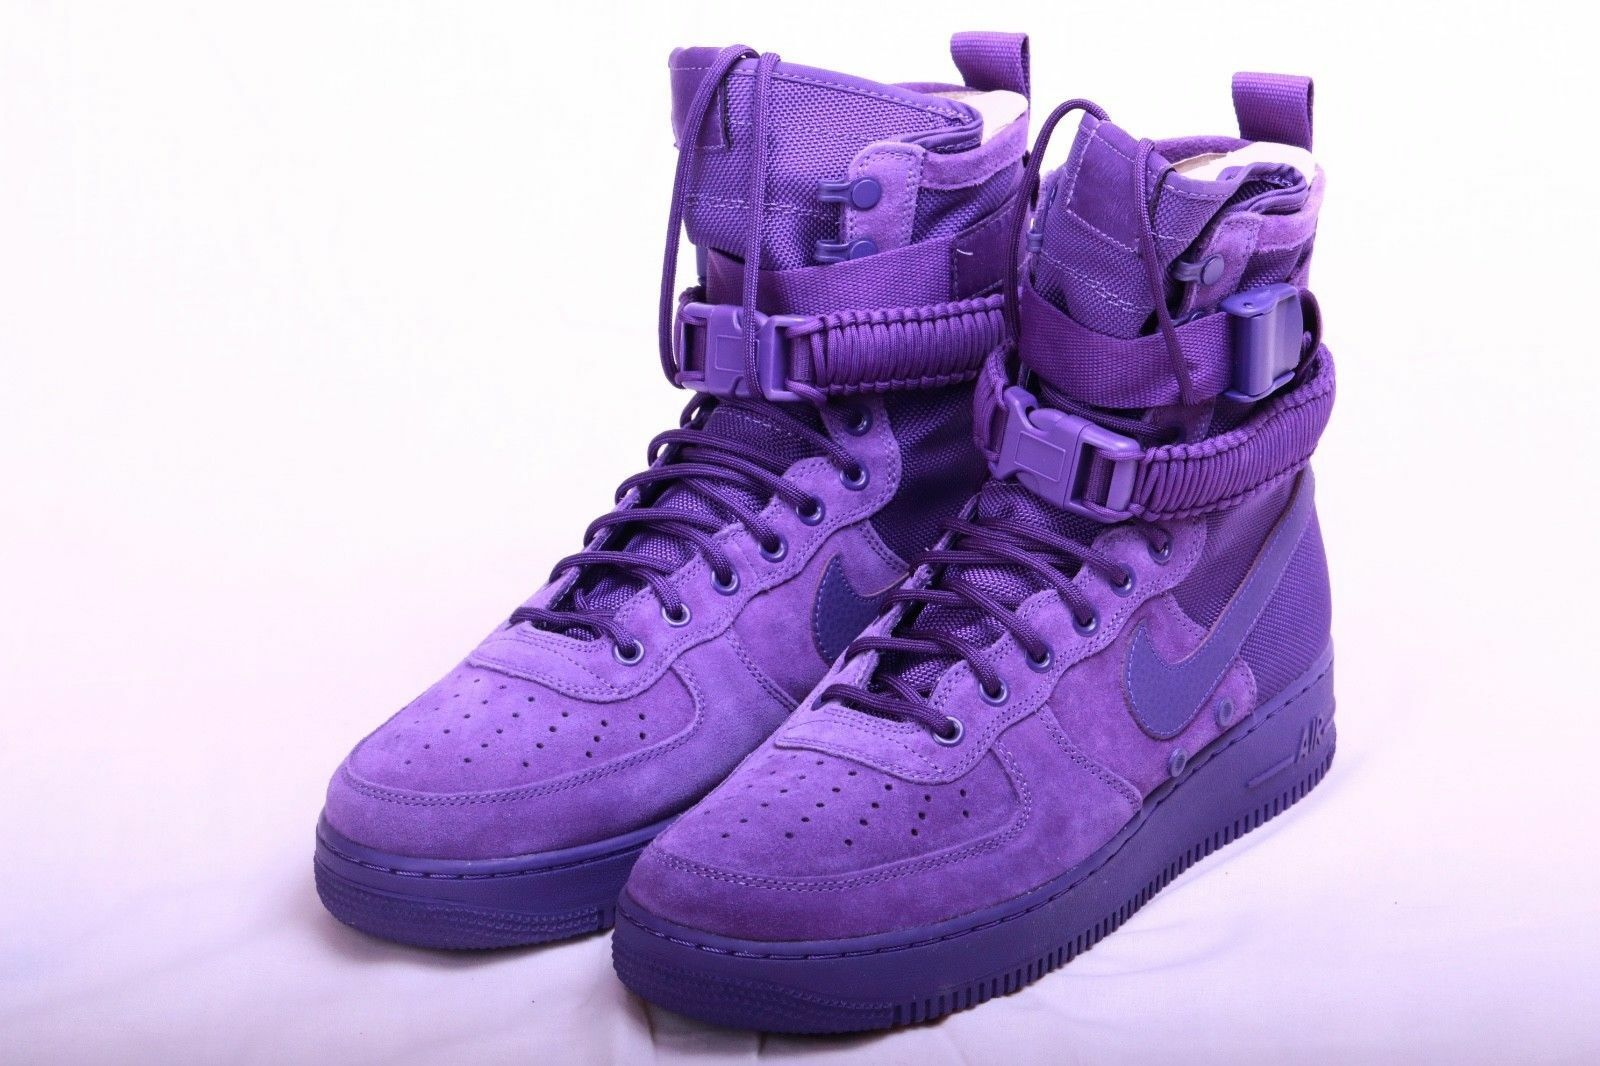 Nike SF AF 1 Air Force 1 Court Purple Suede  Size US 11 Men 864024 500 New